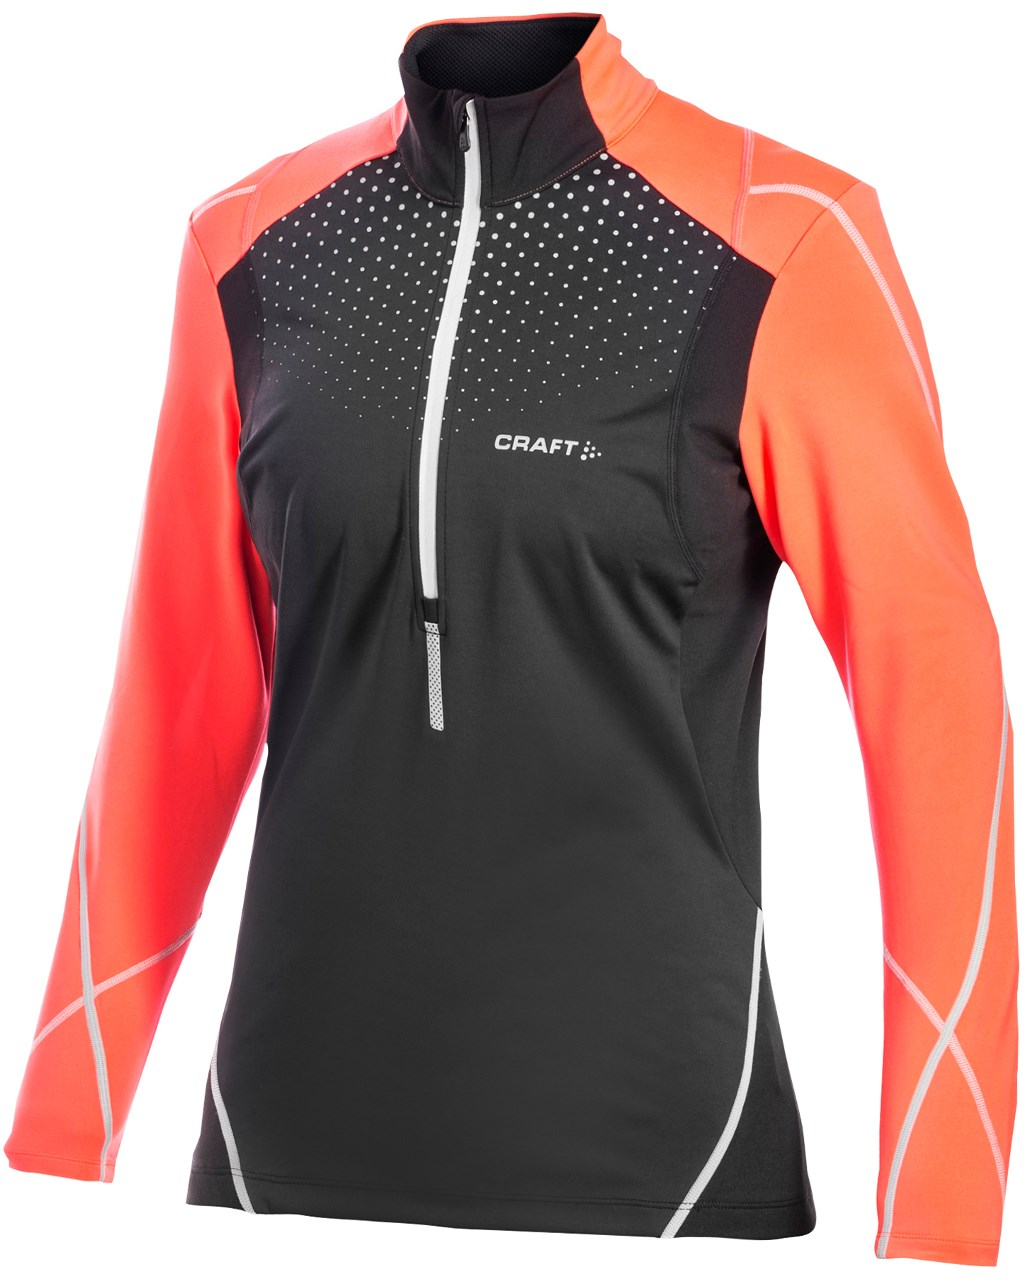 Performance brilliant thermal wind top w shock for Craft pr brilliant thermal wind top